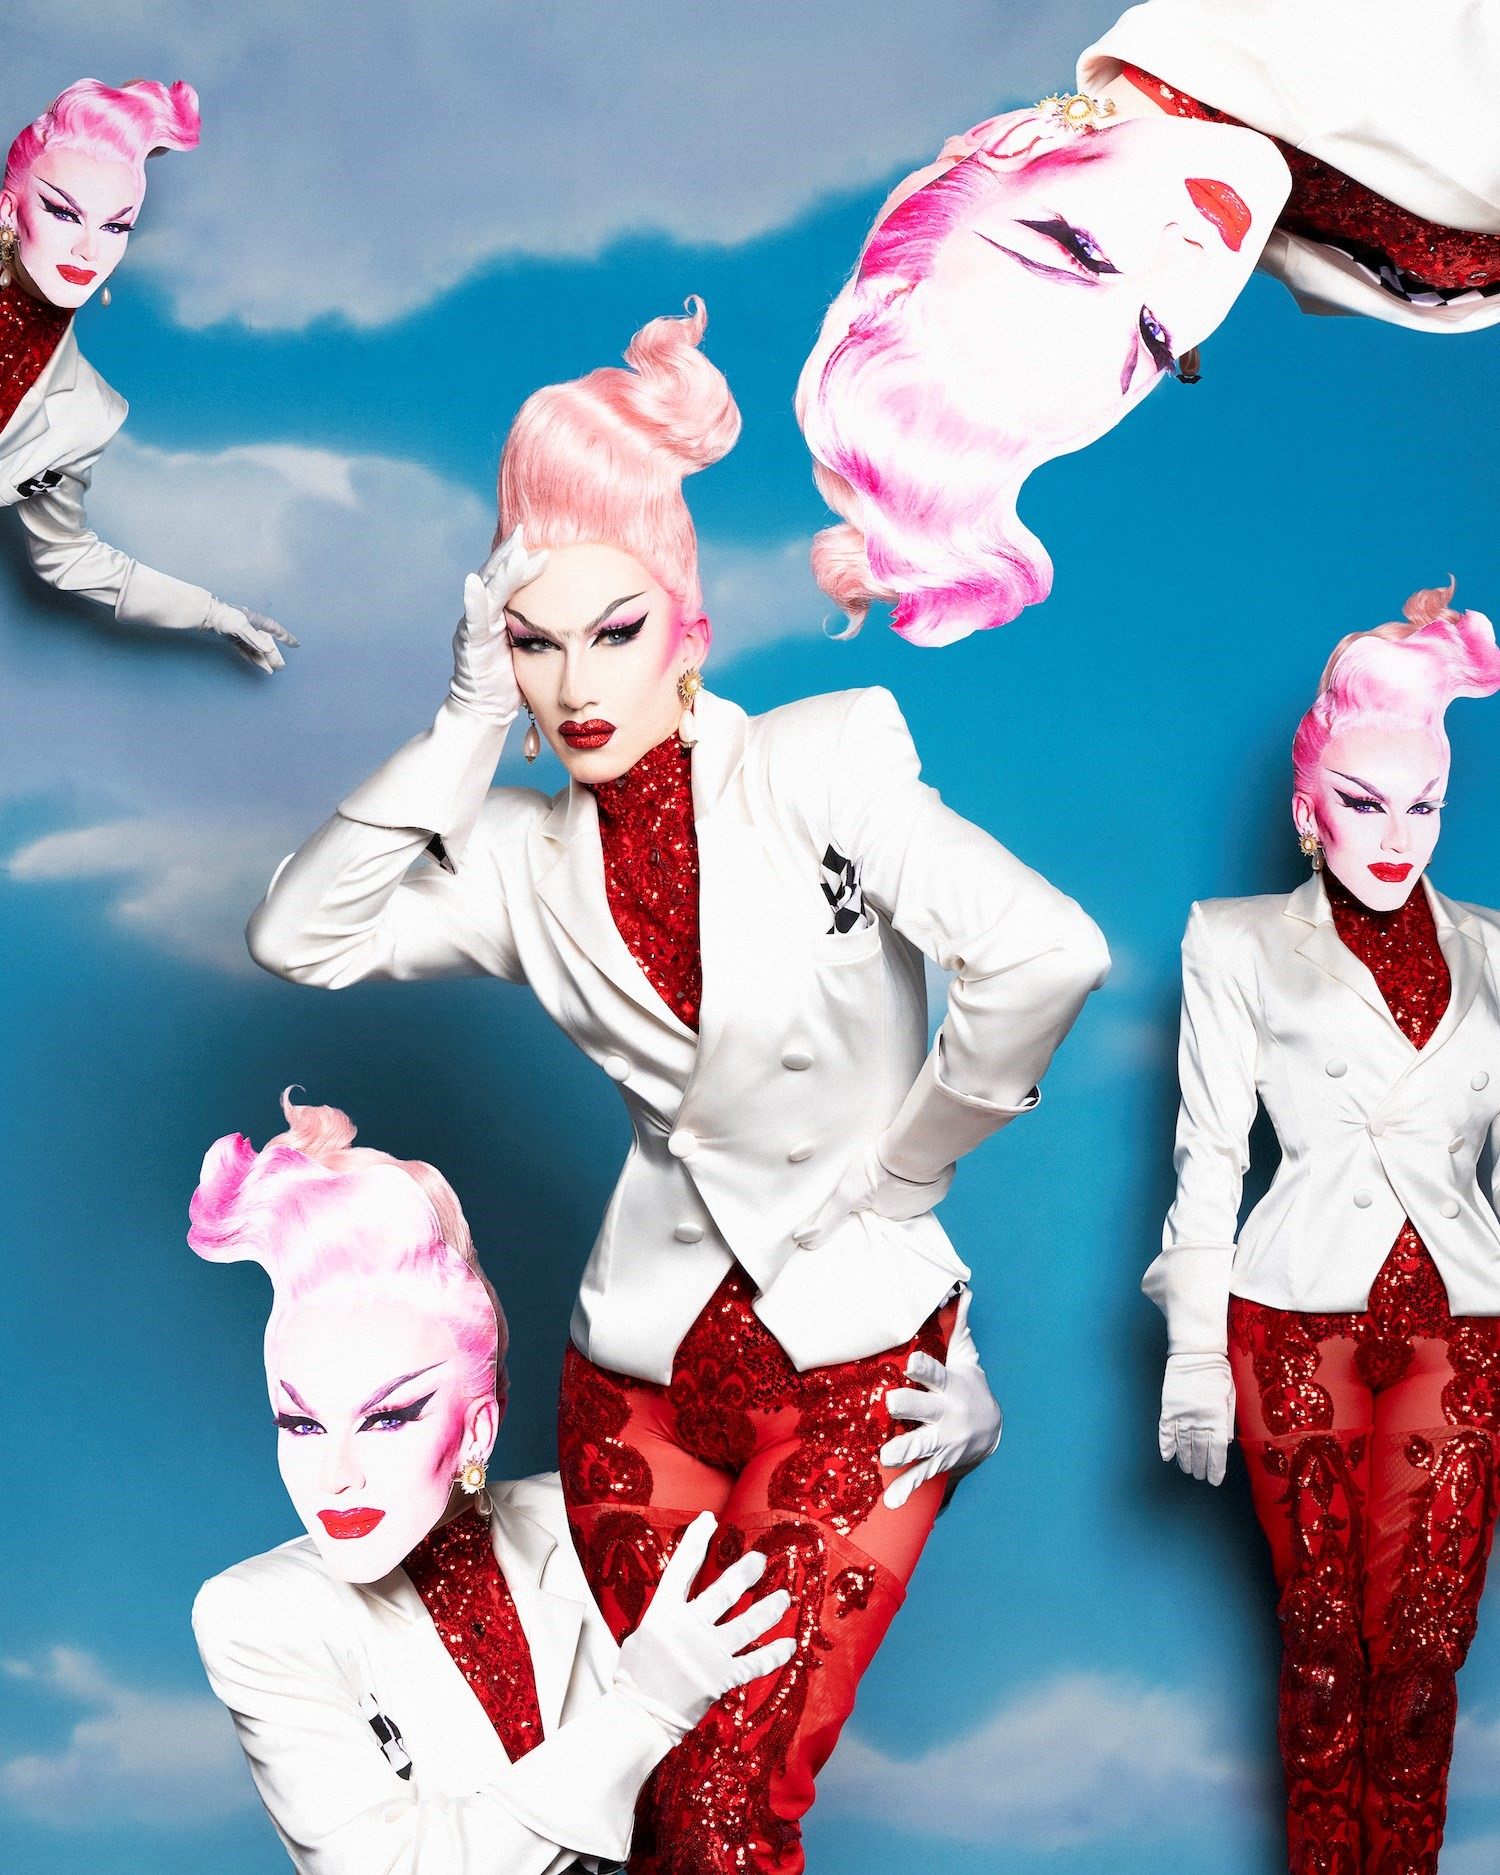 sasha velour smoke & mirrors tour london drag race